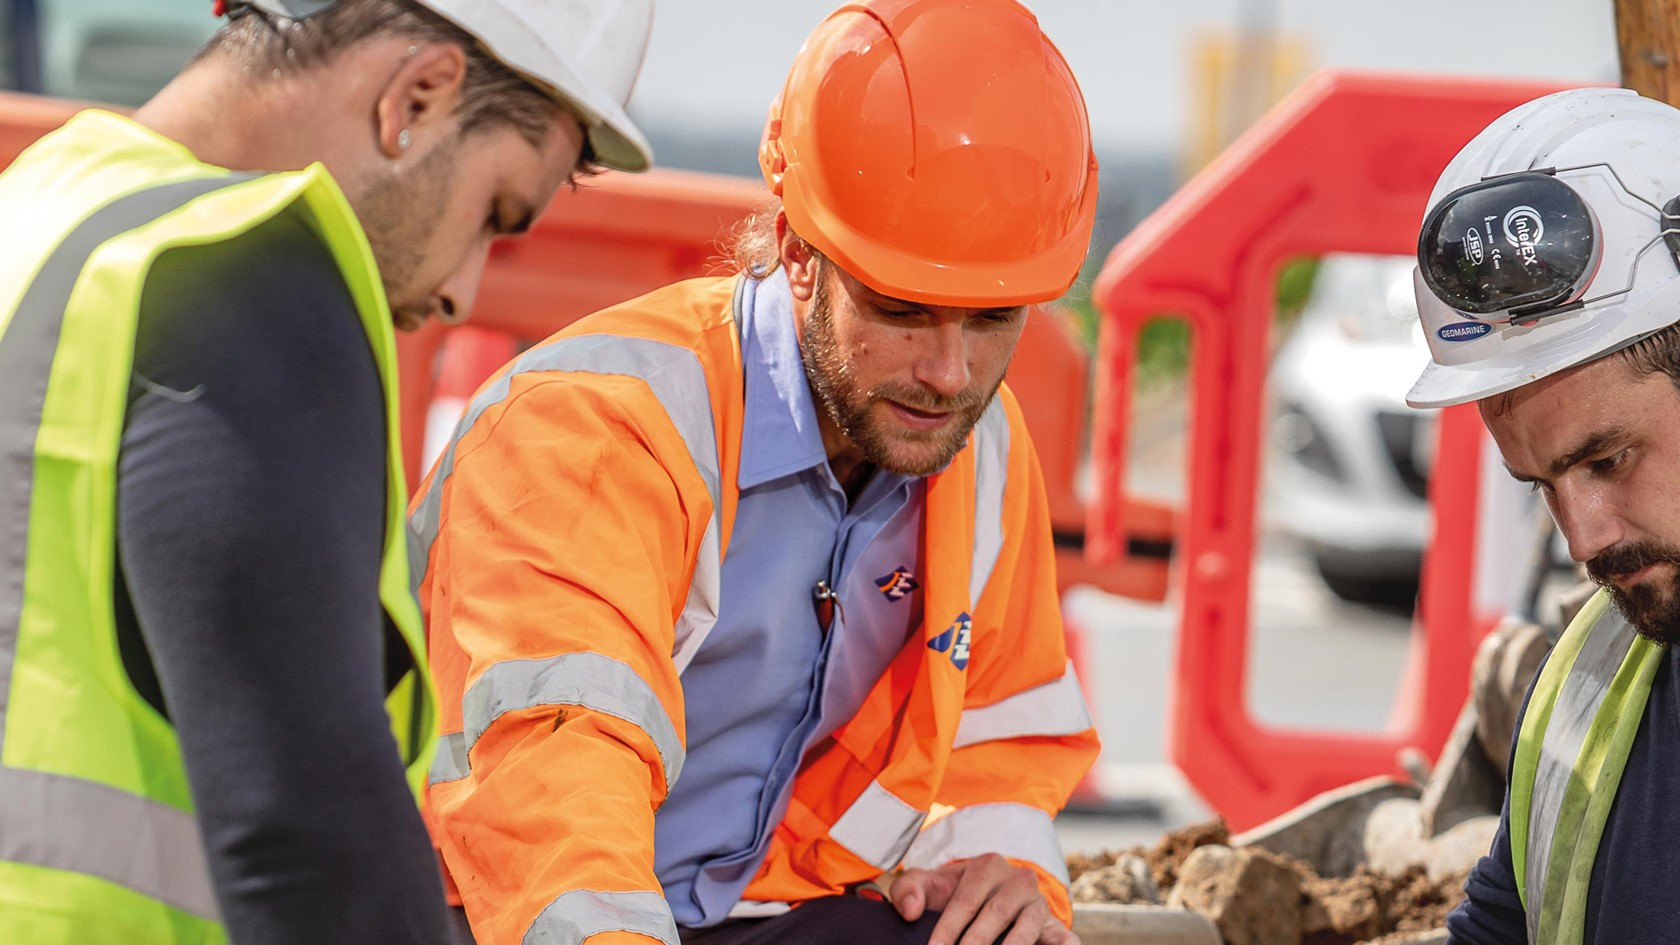 Sam Boleat gives advice to contractors during a constriction project.